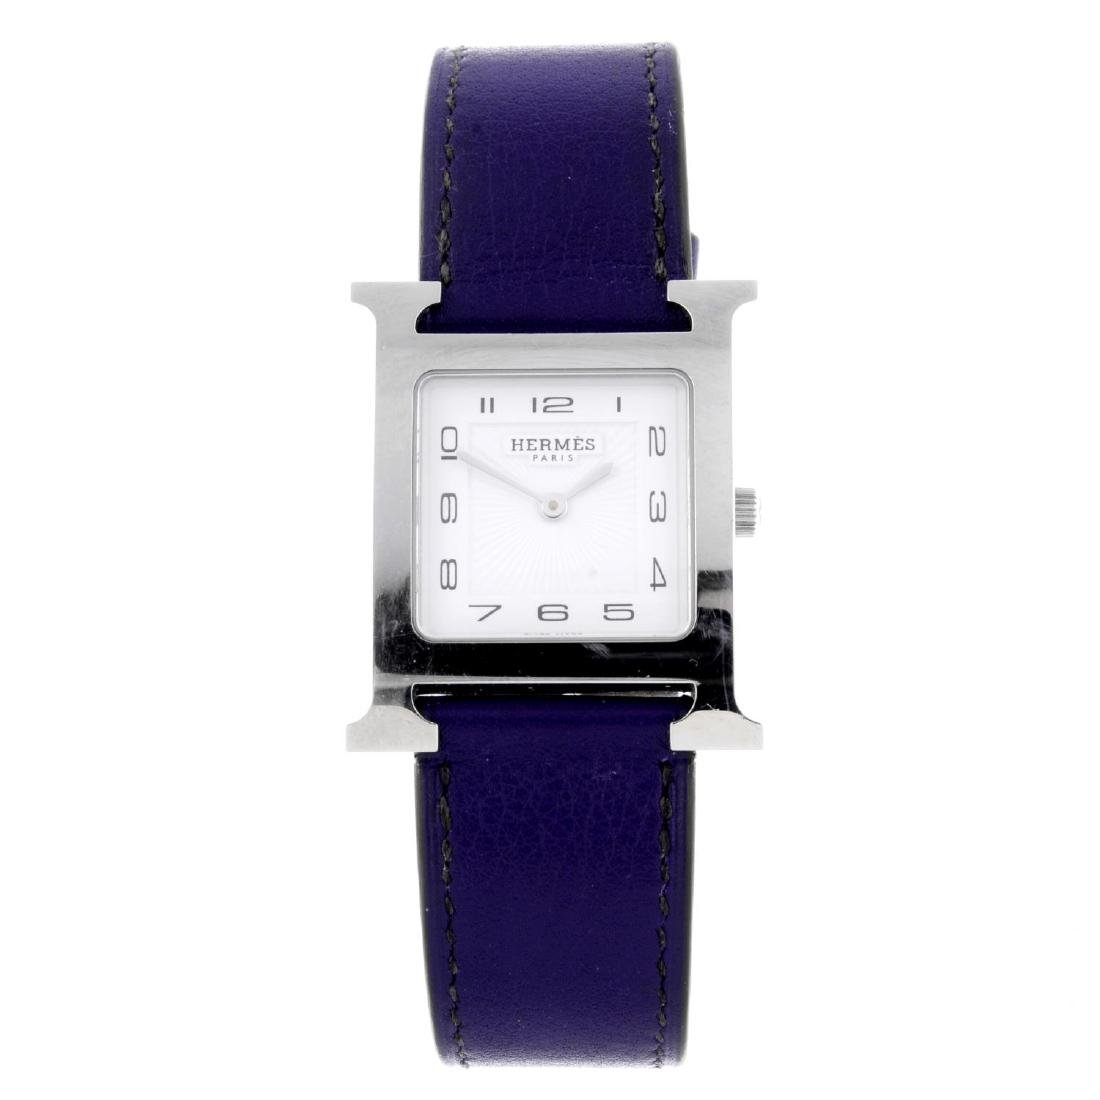 HERMÈS - a Heure H wrist watch. Stainless steel case.